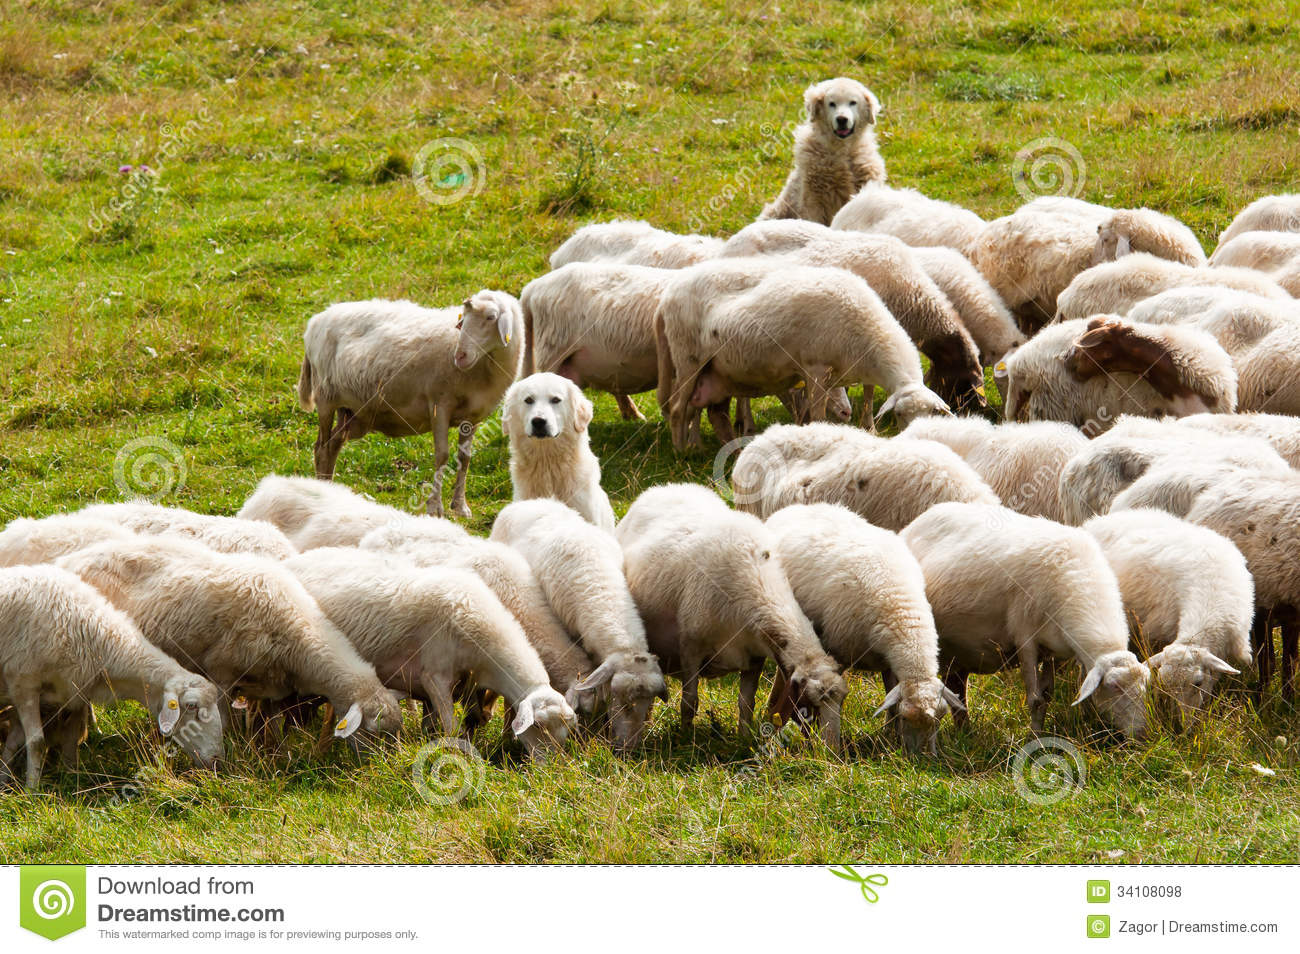 sheepdogs-two-dogs-shepherd-guarding-flock-sheep-34108098.jpg